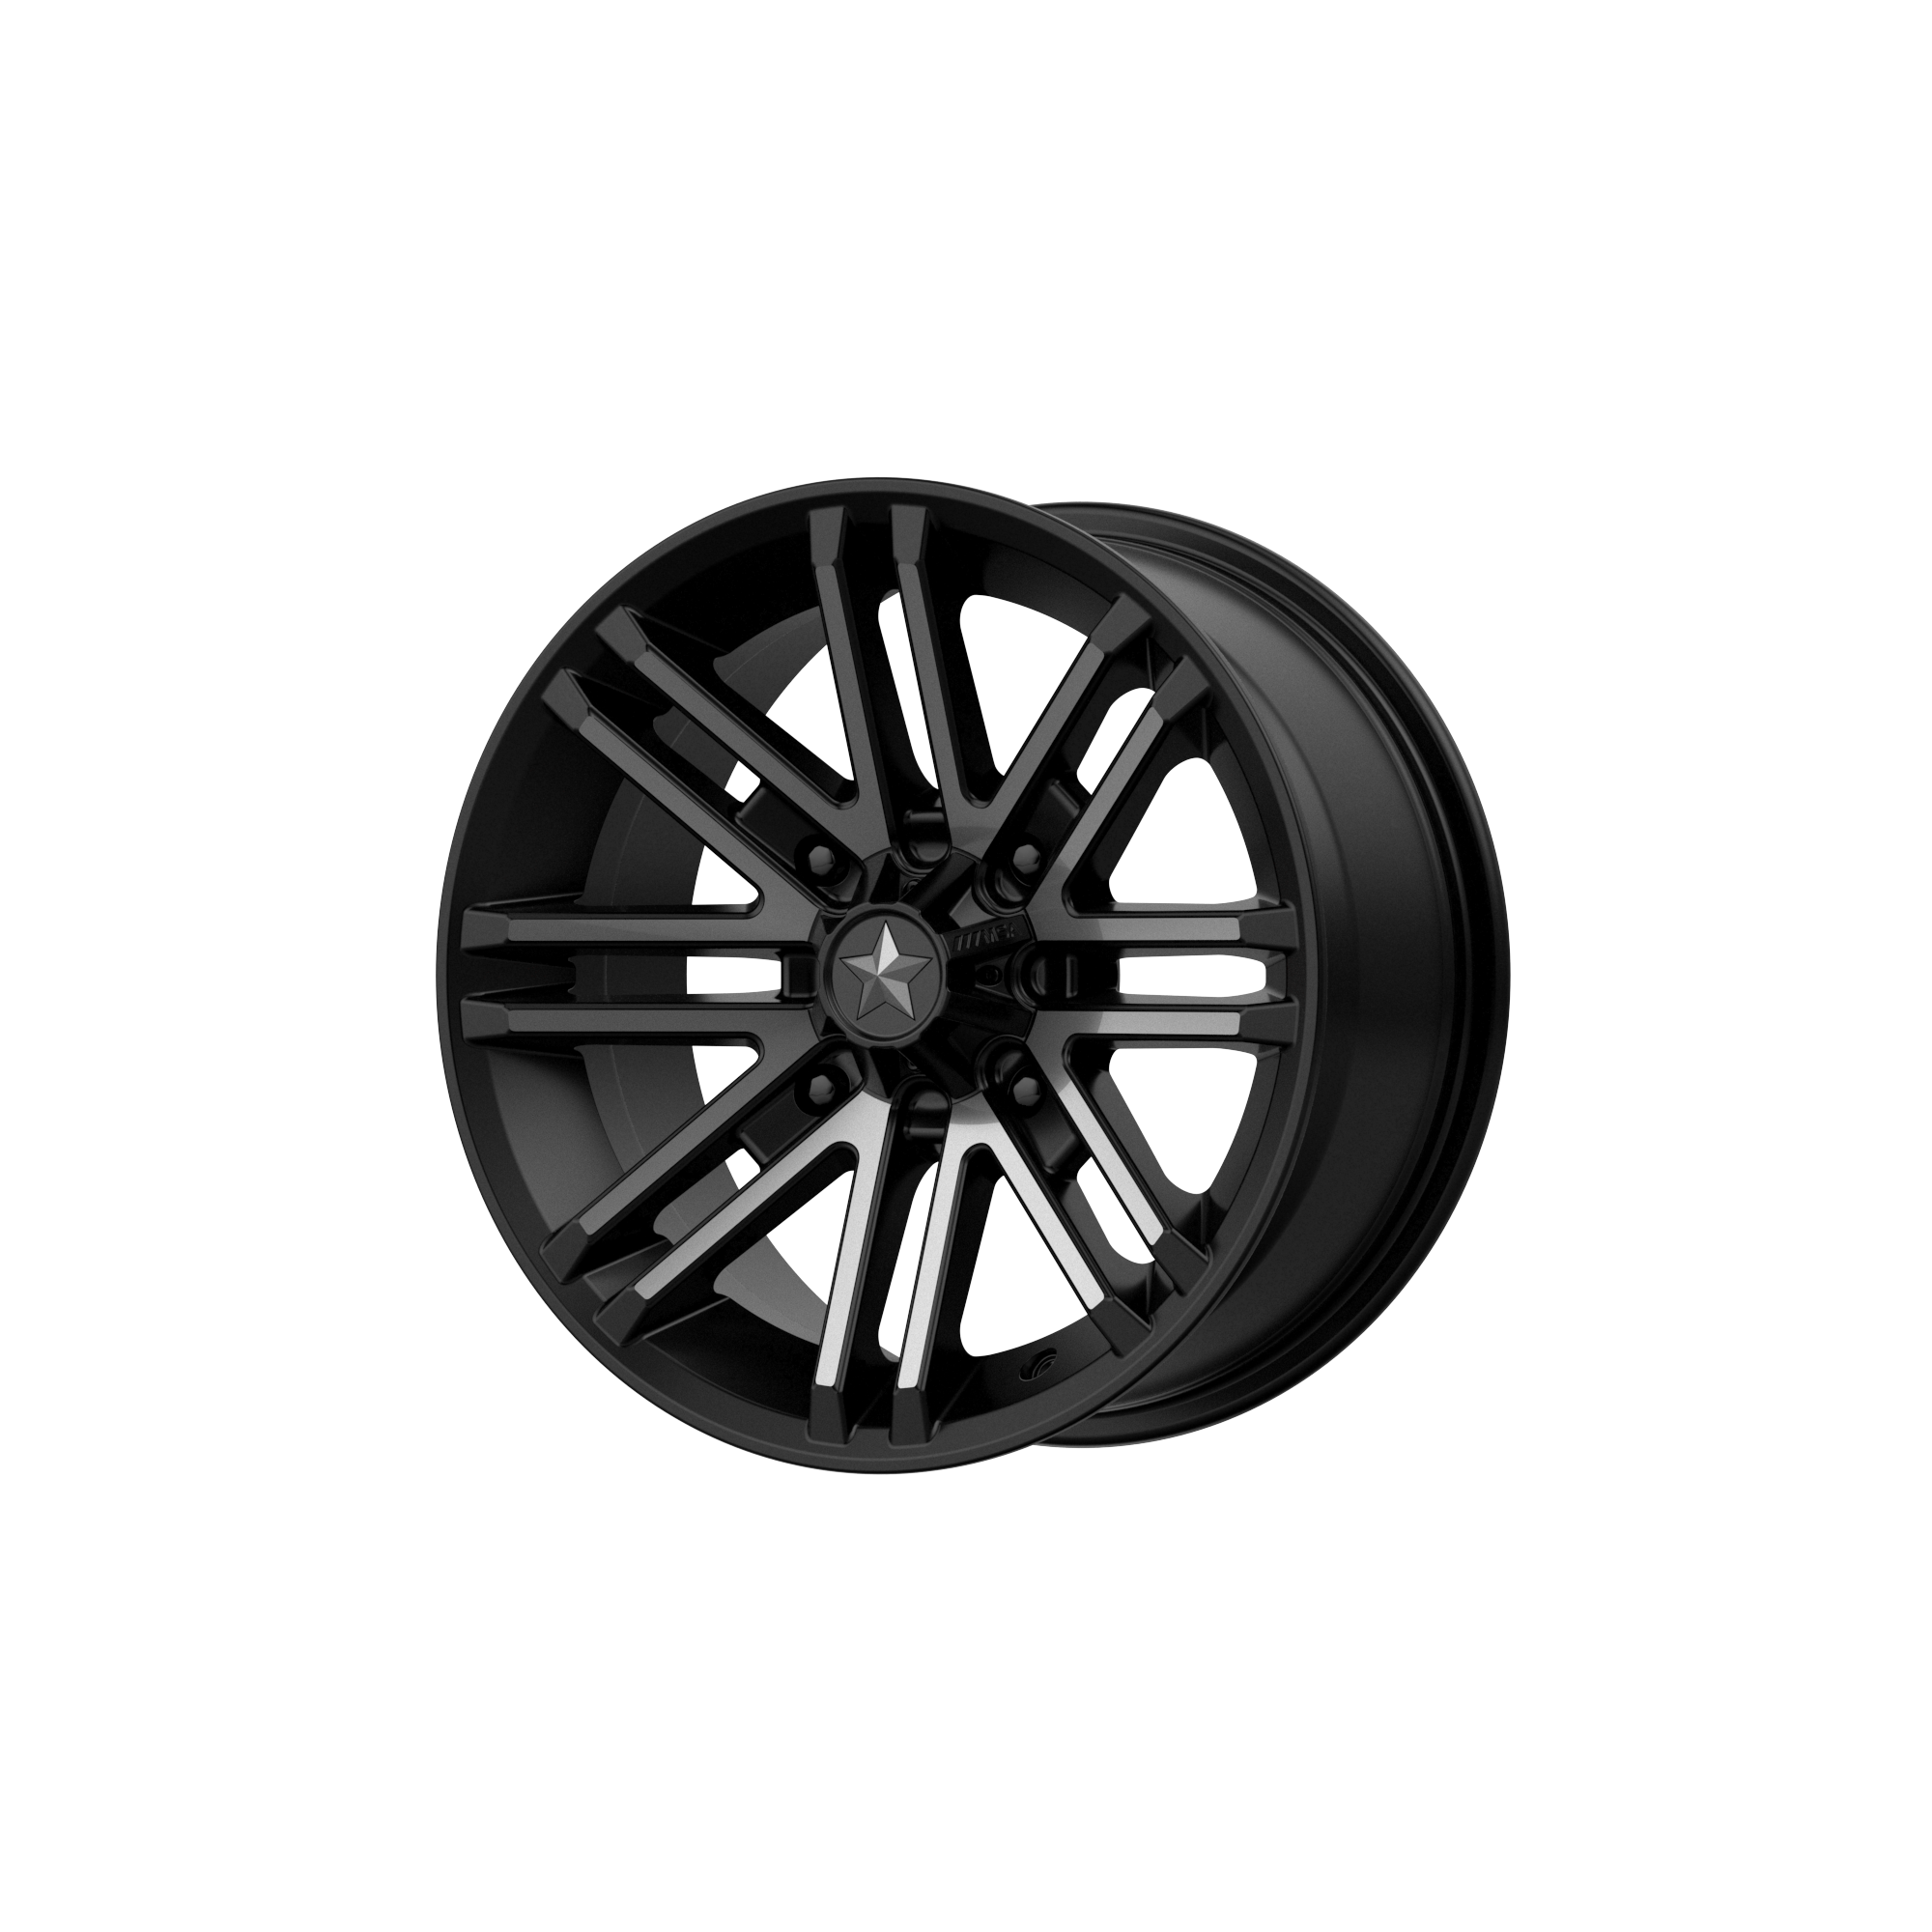 MSA OFFROAD WHEELS ROGUE SATIN BLACK W/ TITANIUM TINT